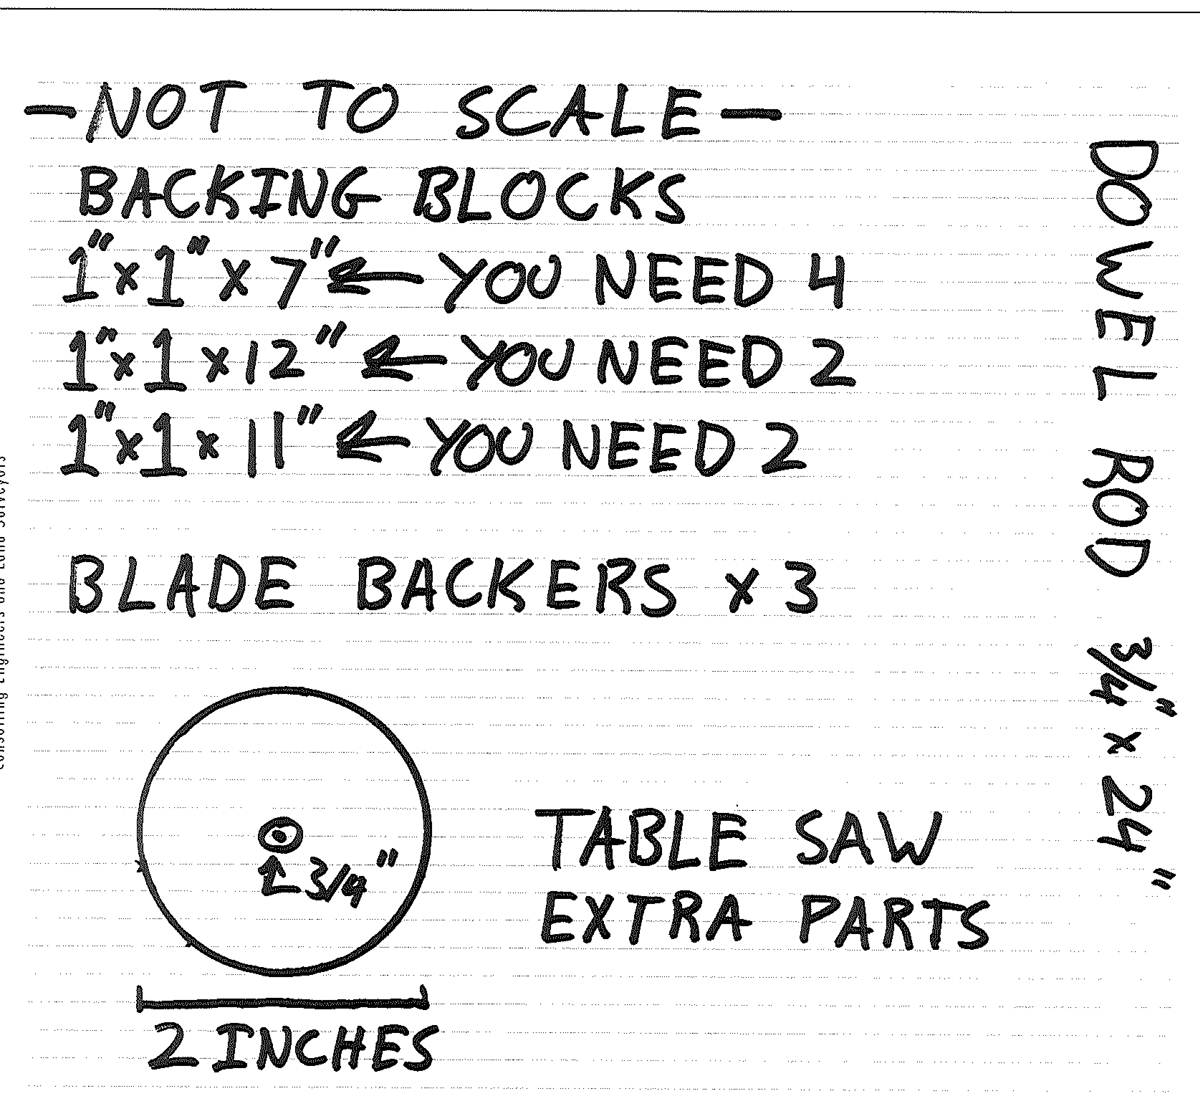 Nelsonstudios Toy Table Saw Plans